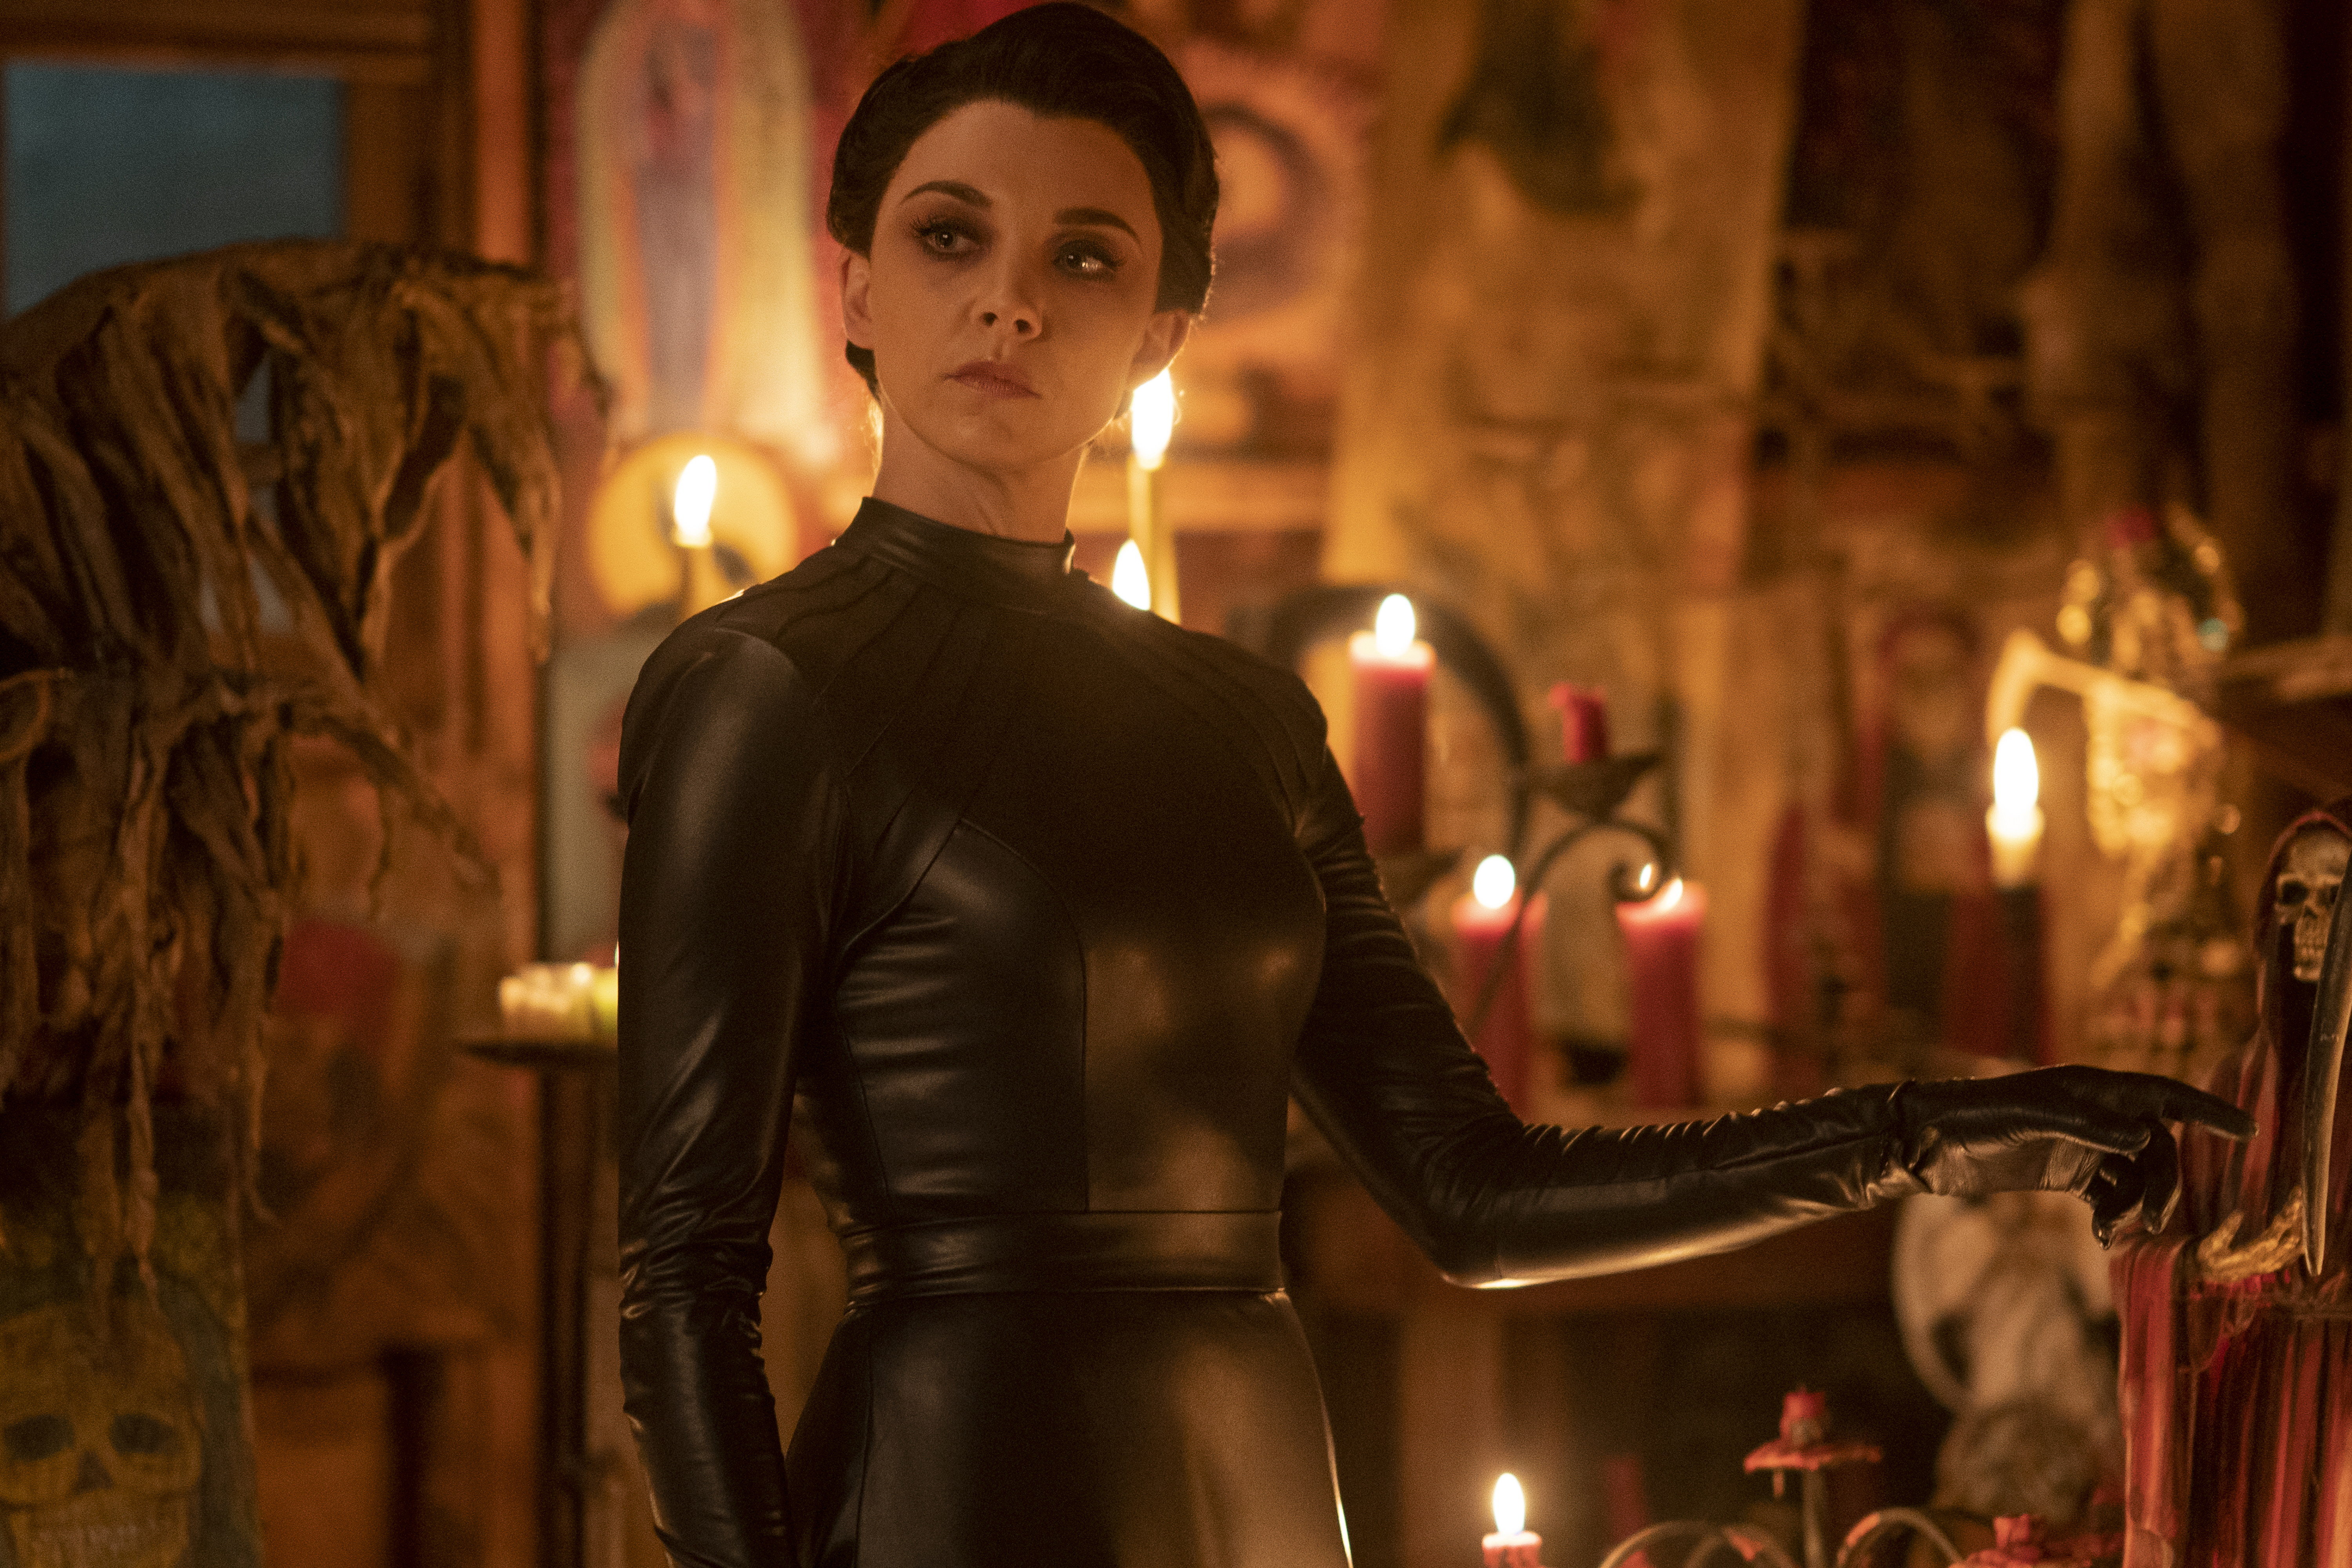 Penny Dreadful: Season Package and Spin-off Series to be won!